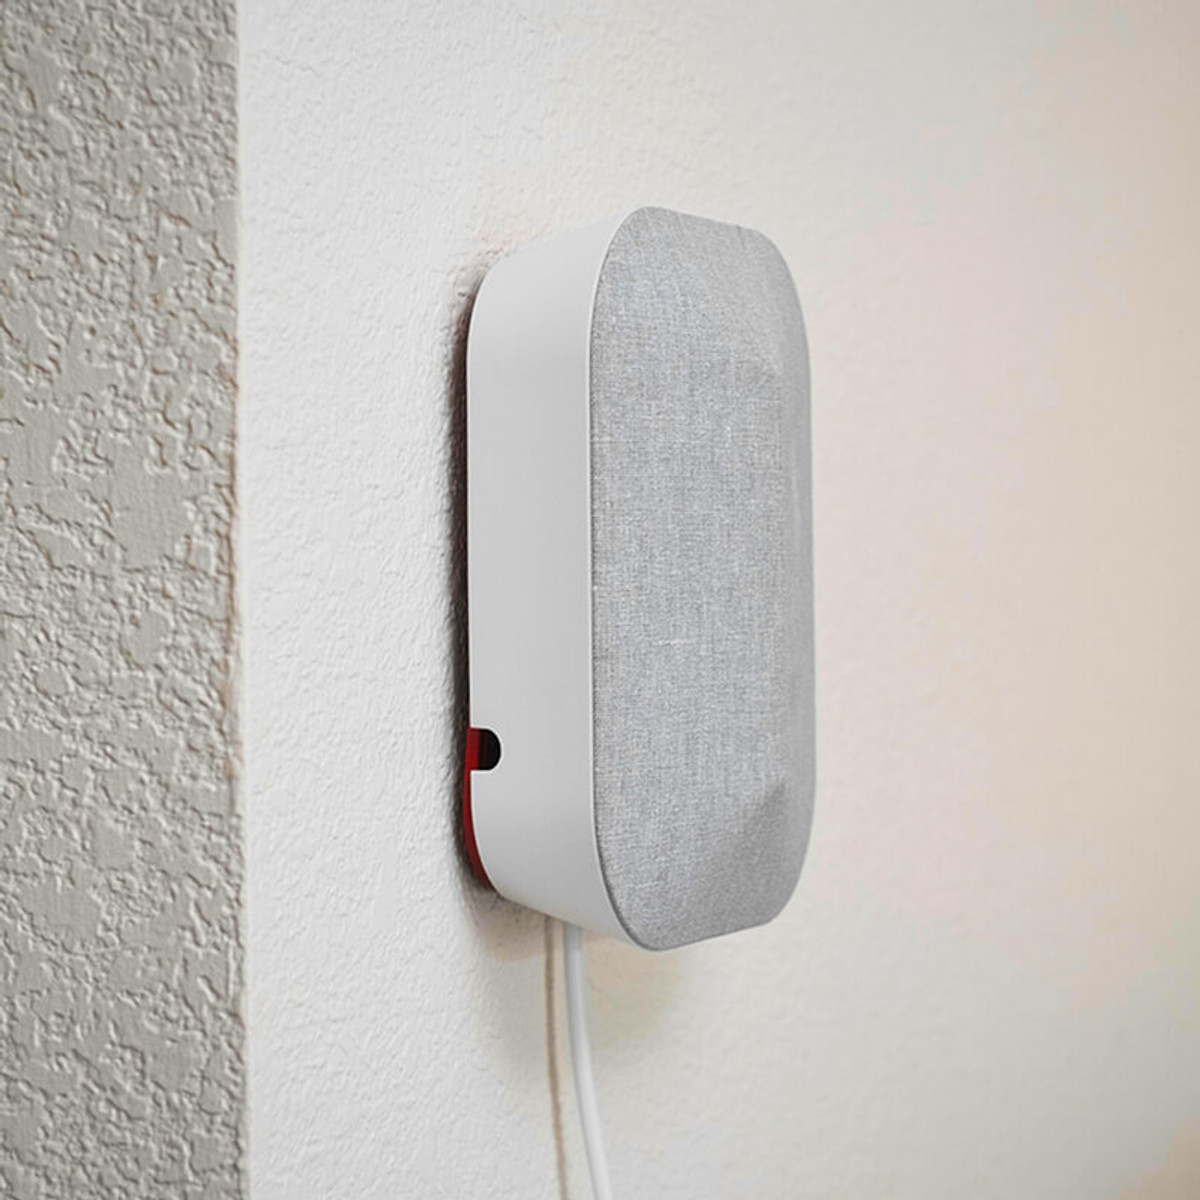 weBoost Home Complete Signal Booster Indoor Panel Antenna Mounted